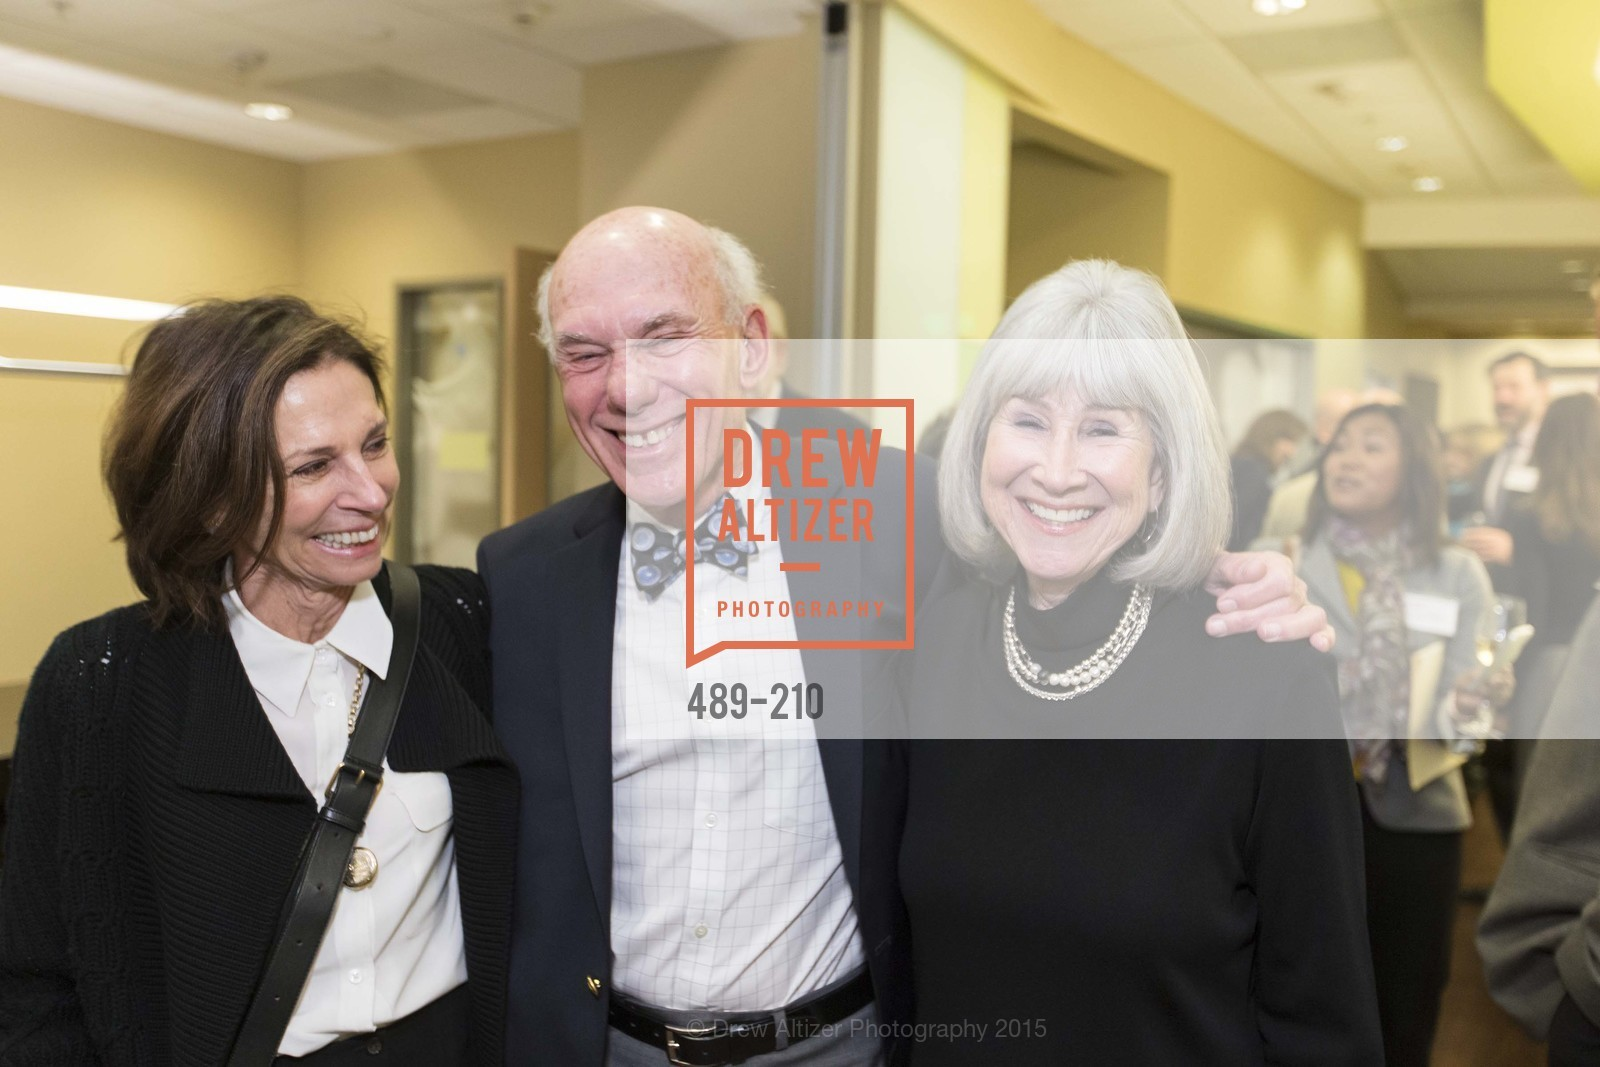 Linda Howell, Harvey Freedman, Deana Freedman, Ronald McDonald House of San Francisco - Donor Appreciation Reception, UCSF Benioff Children's Hospital San Francisco, January 20th, 2015,Drew Altizer, Drew Altizer Photography, full-service agency, private events, San Francisco photographer, photographer california